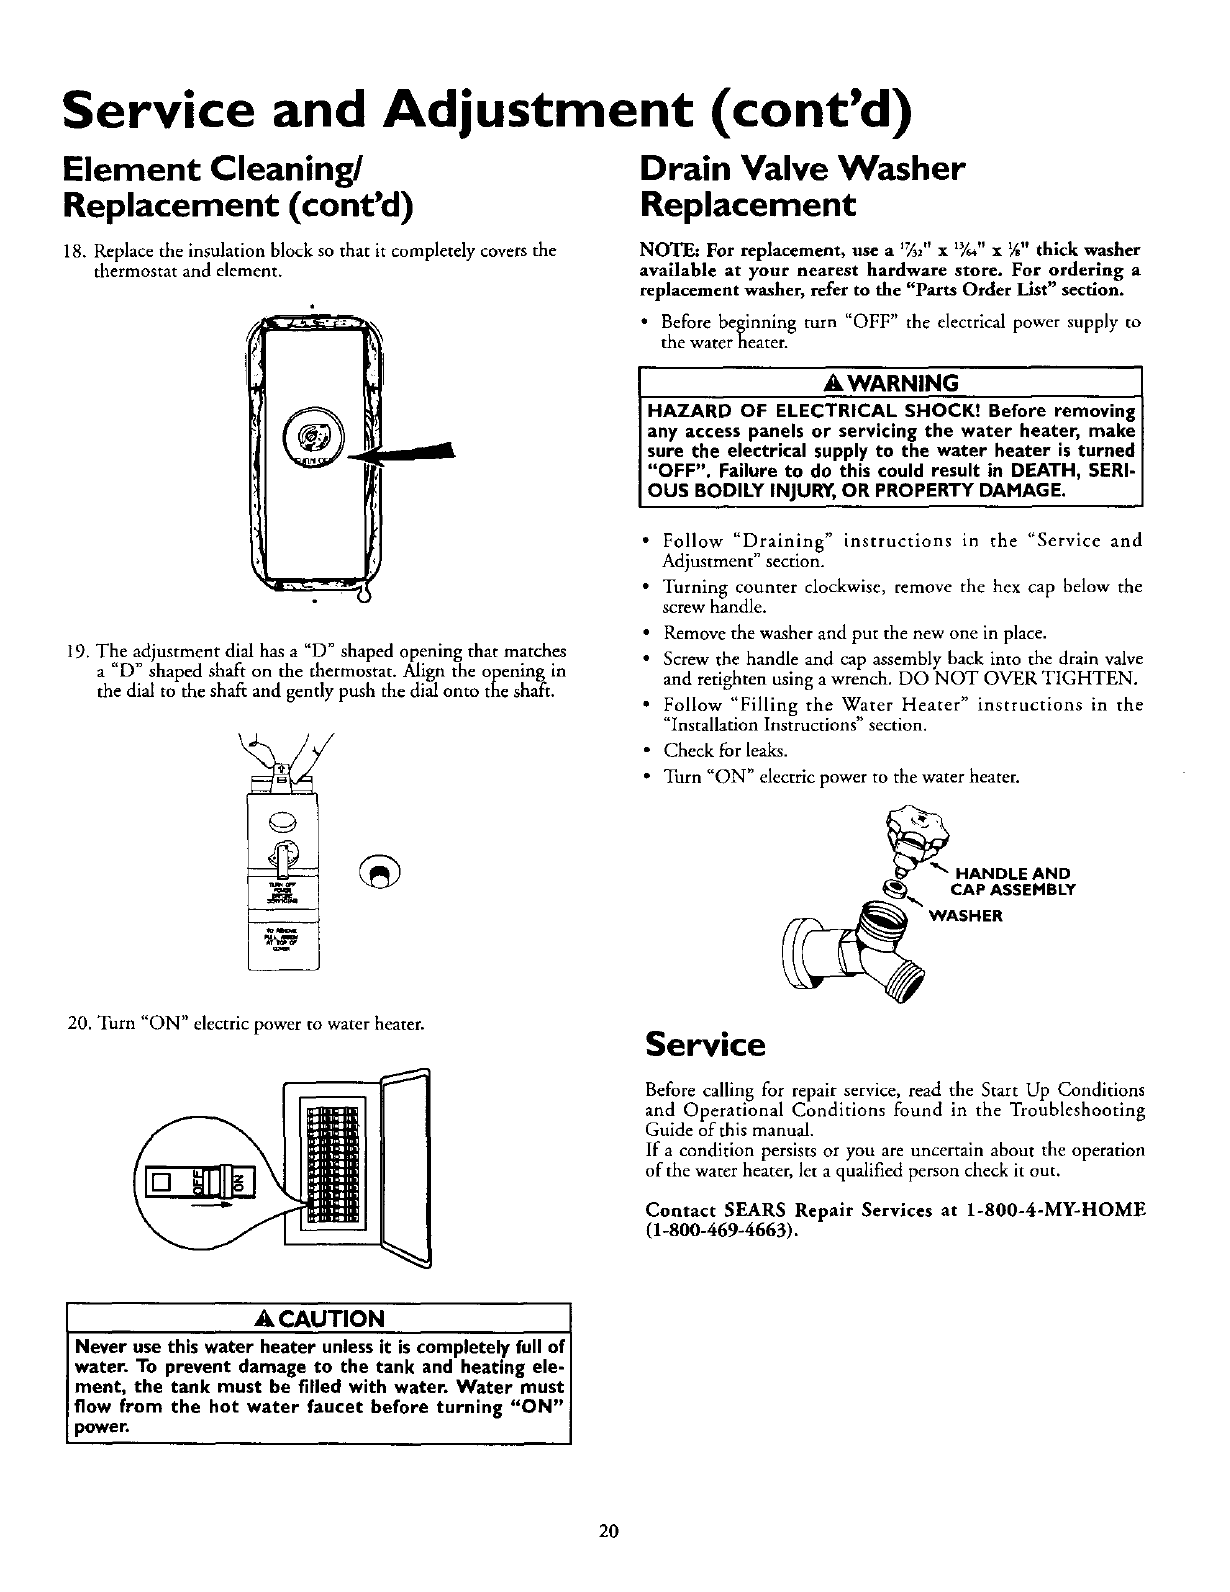 Page 20 Of Kenmore Water Heater 153320593 Ht User Guide Sears Thermostat Wiring Diagram Service And Adjustment Contd Element Cleaning